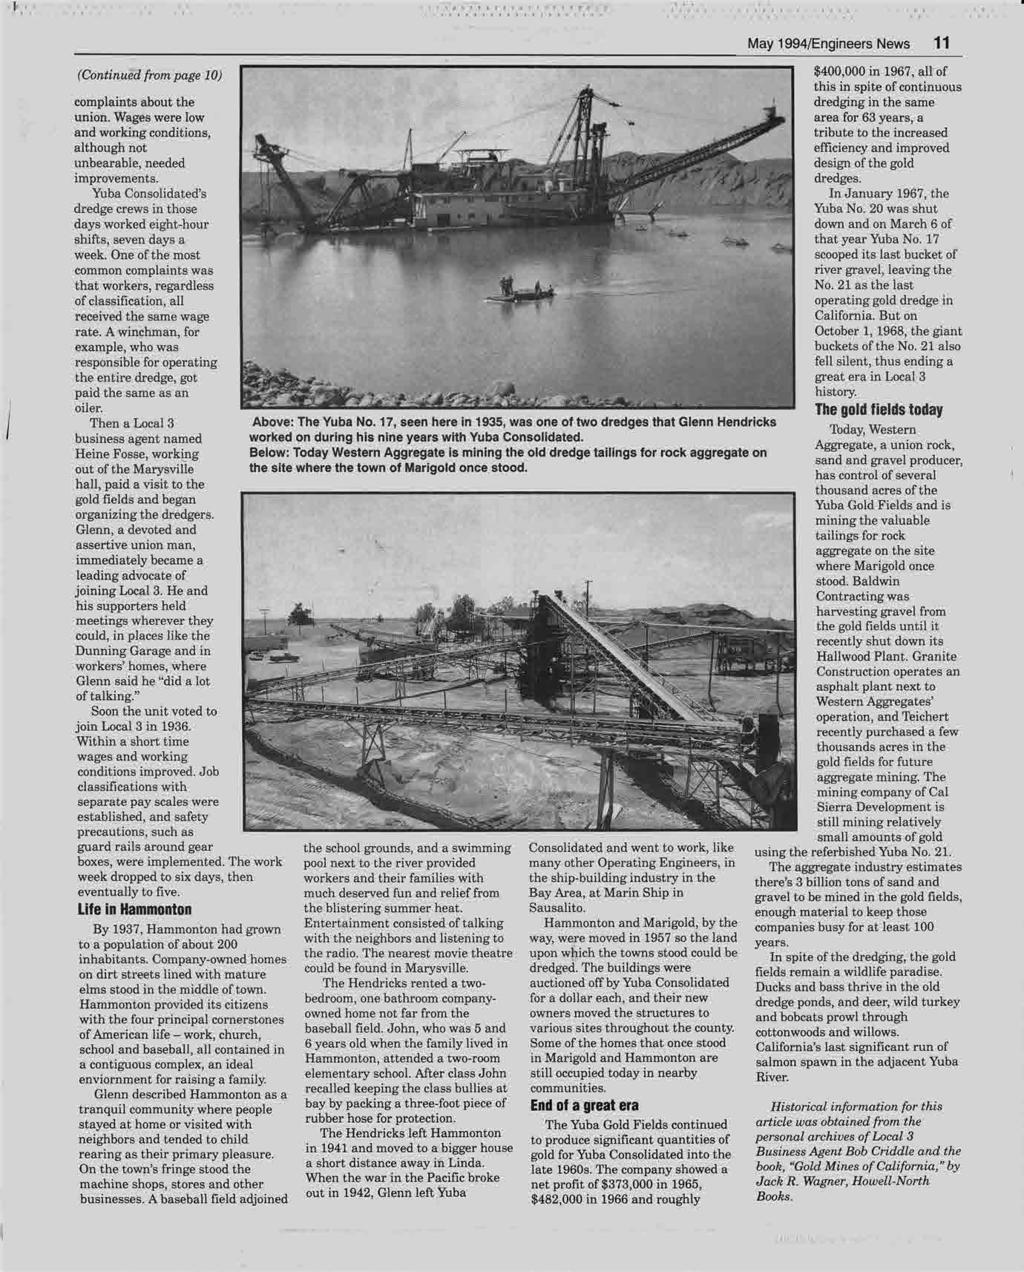 1 1 May 1994/Engineers News 11 (Continued from page 10) $400,000 in 1967, all of complaints about the this in spite of continuous dredging in the same union.